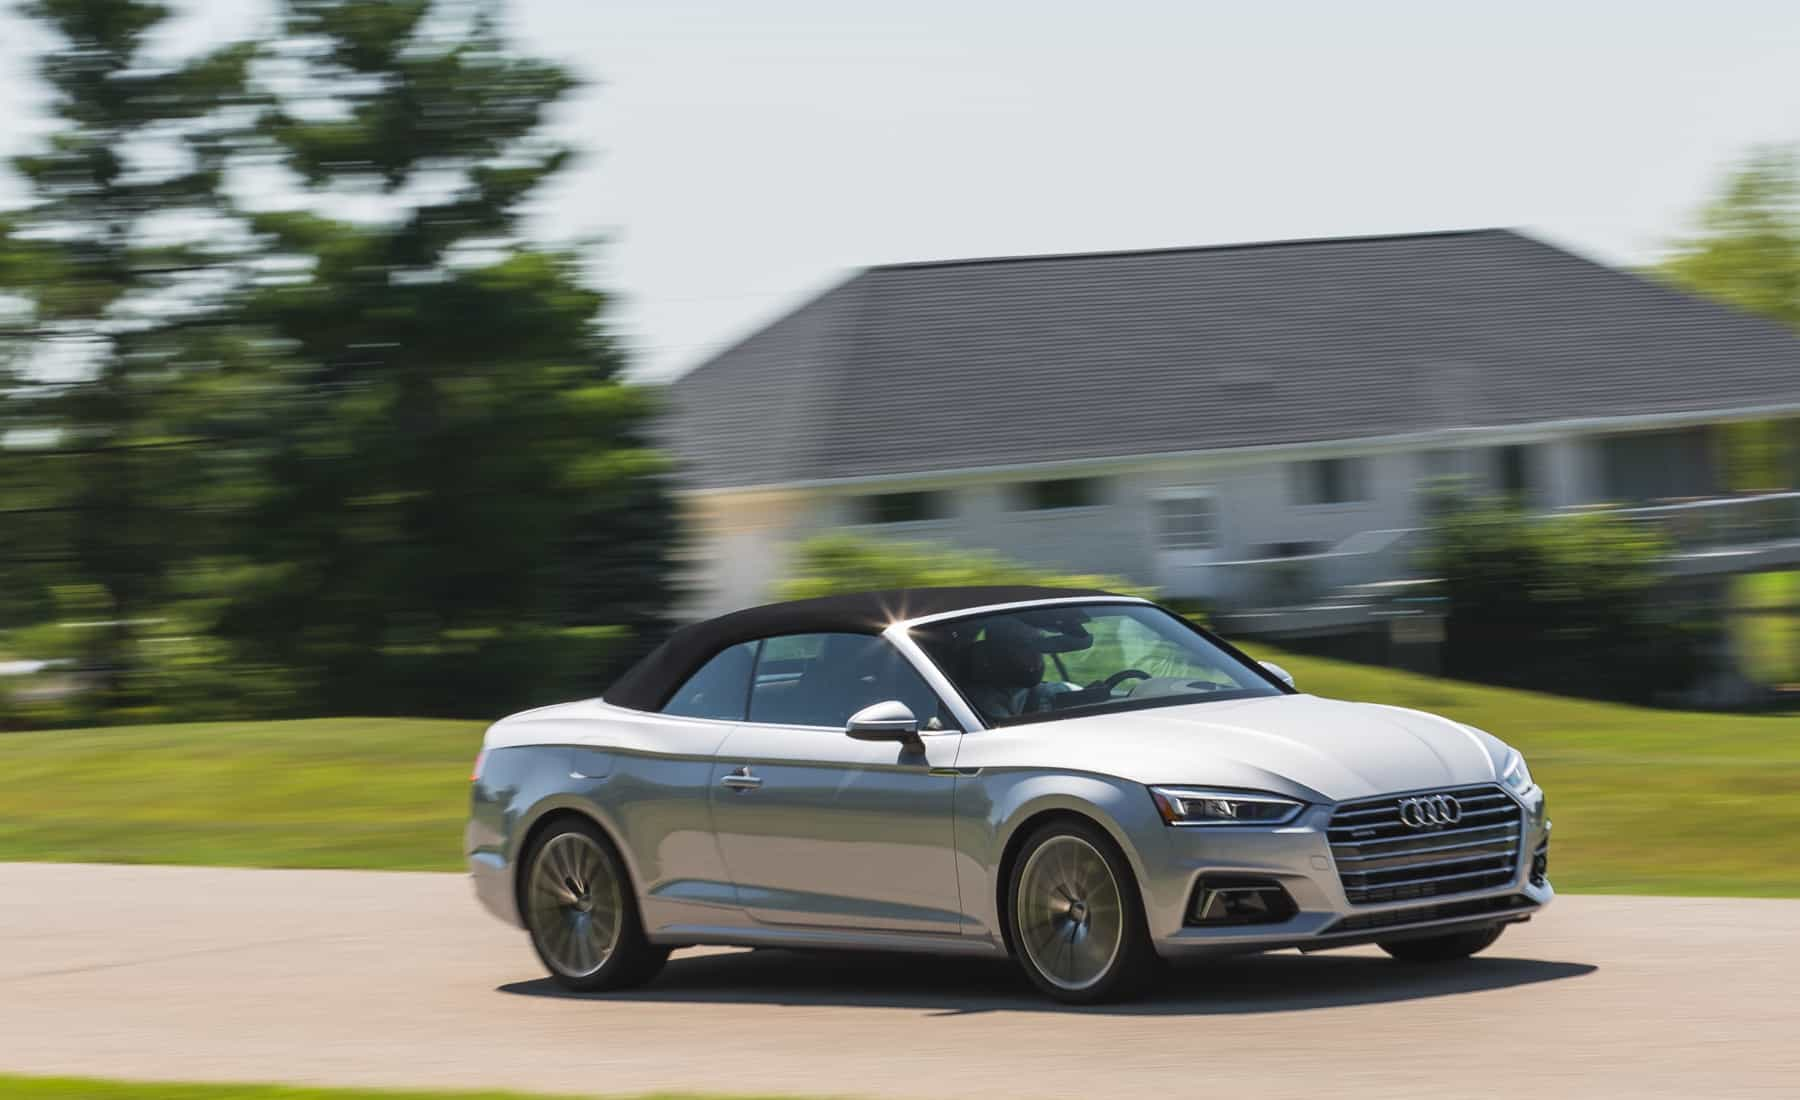 2018 Audi A5 Cabriolet Cars Exclusive Videos And Photos